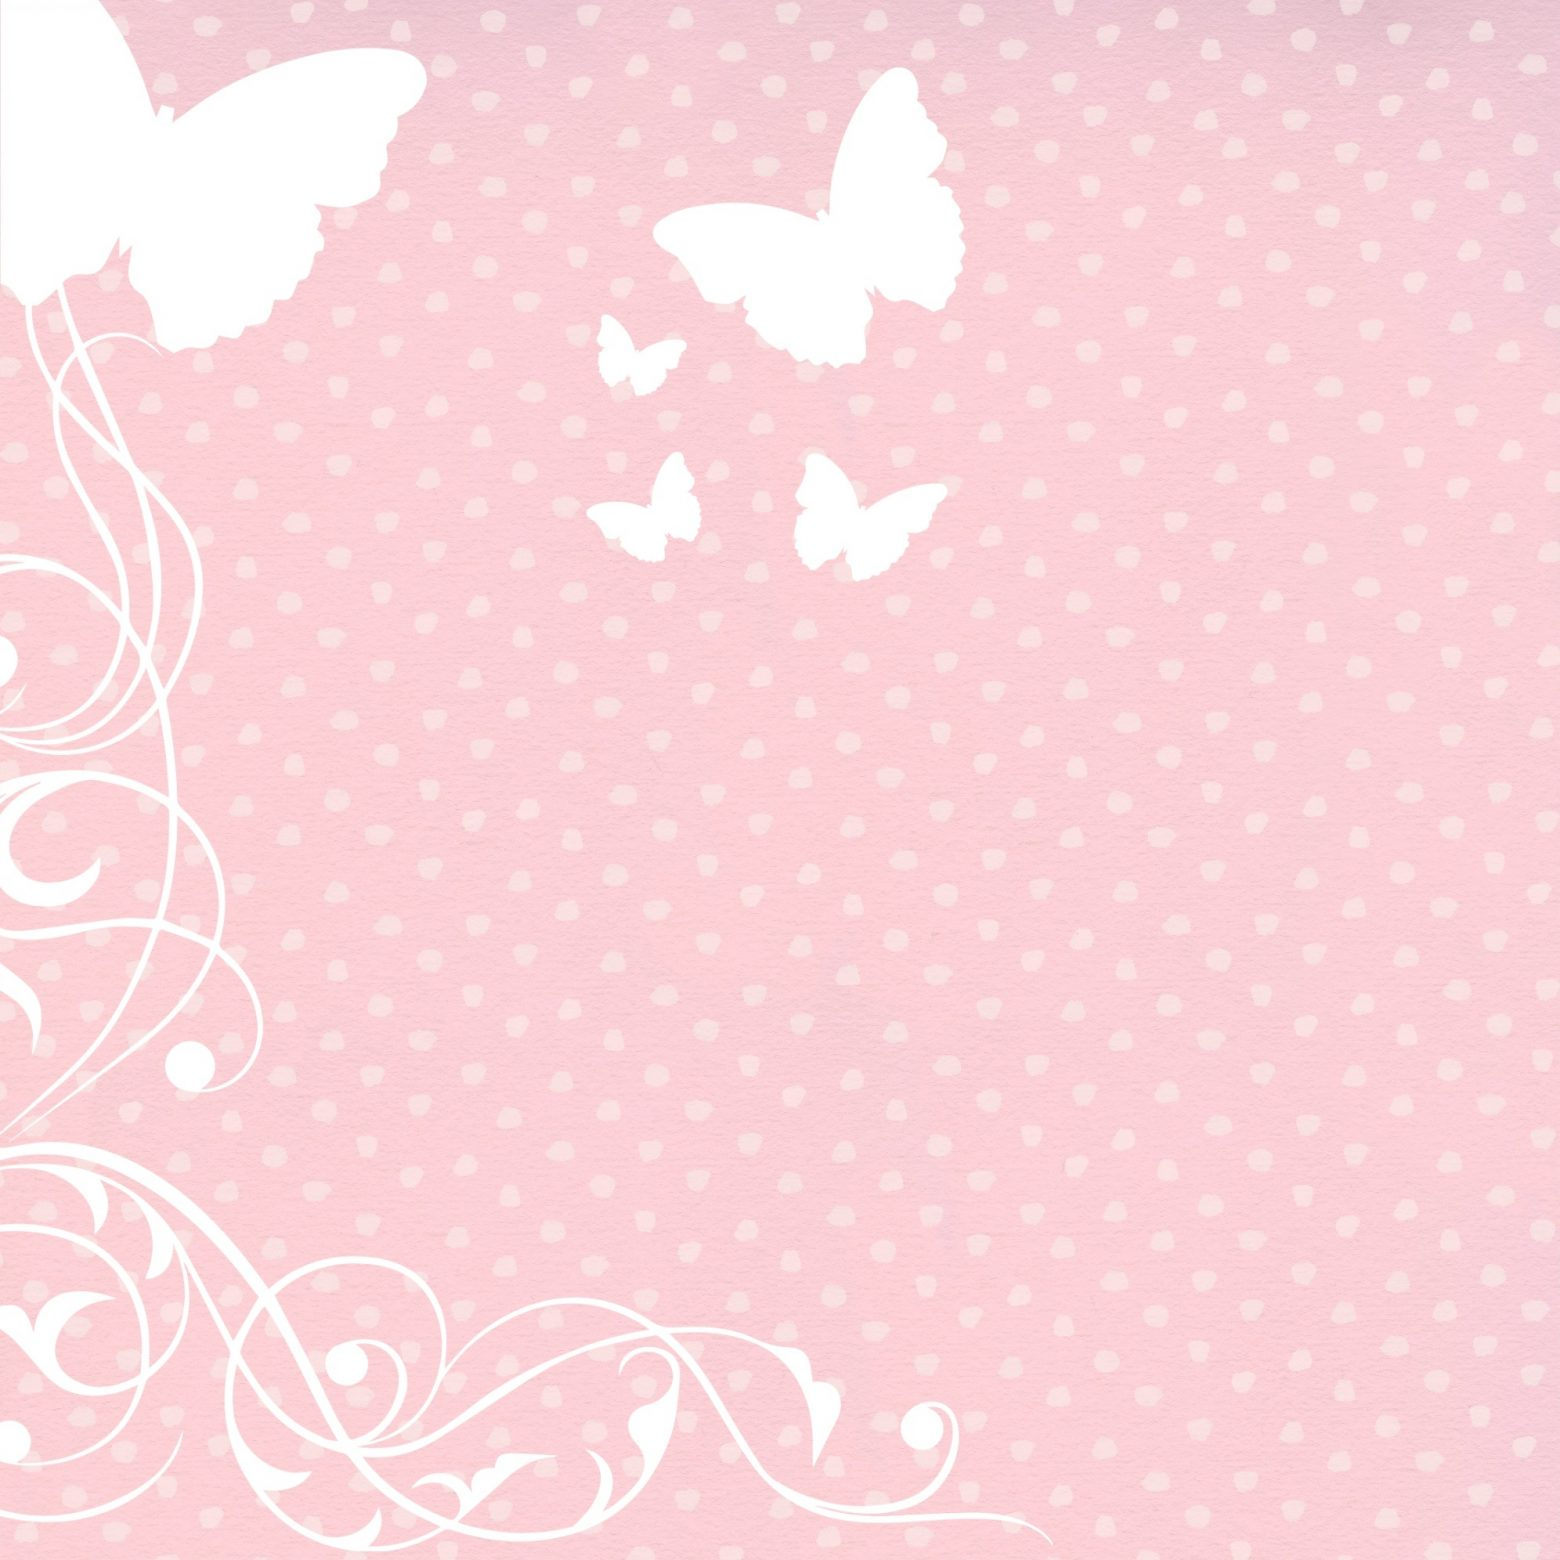 background-2780128